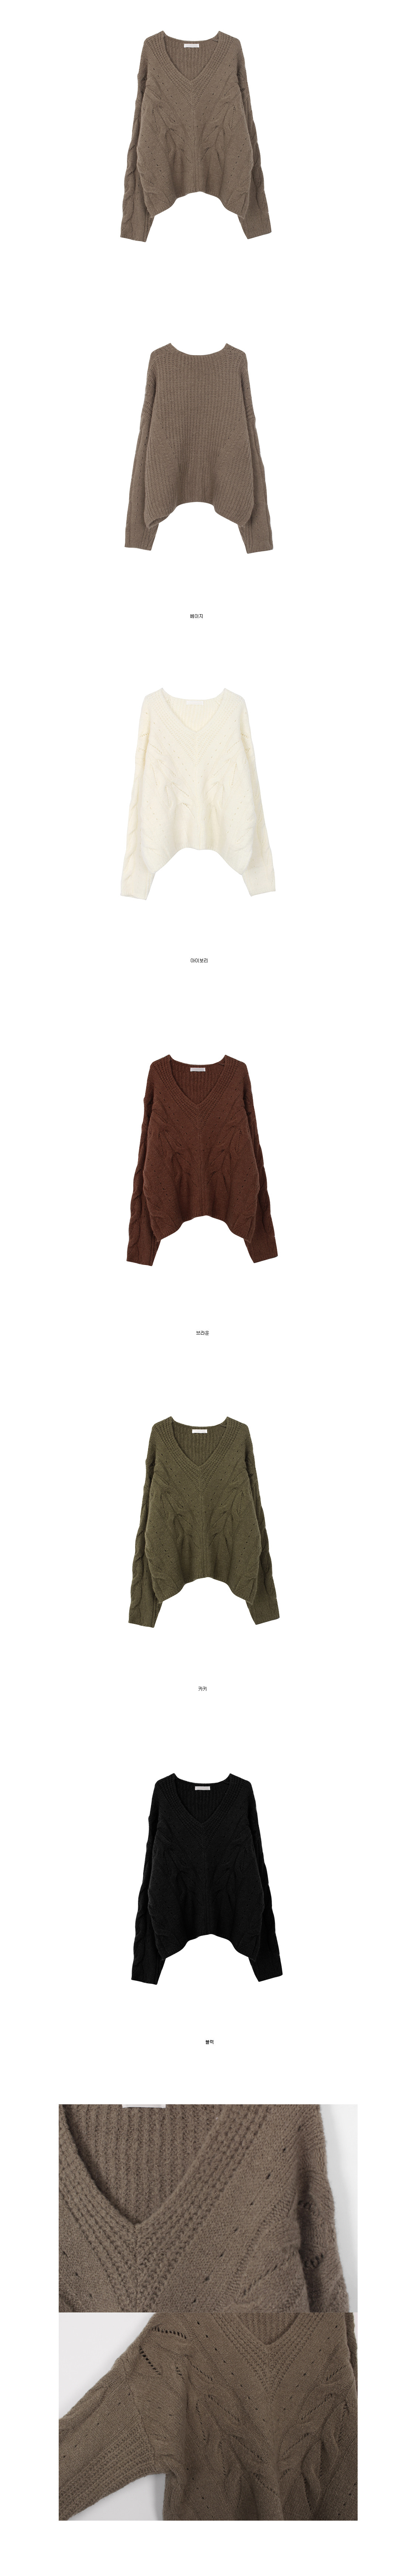 Over deep v knit